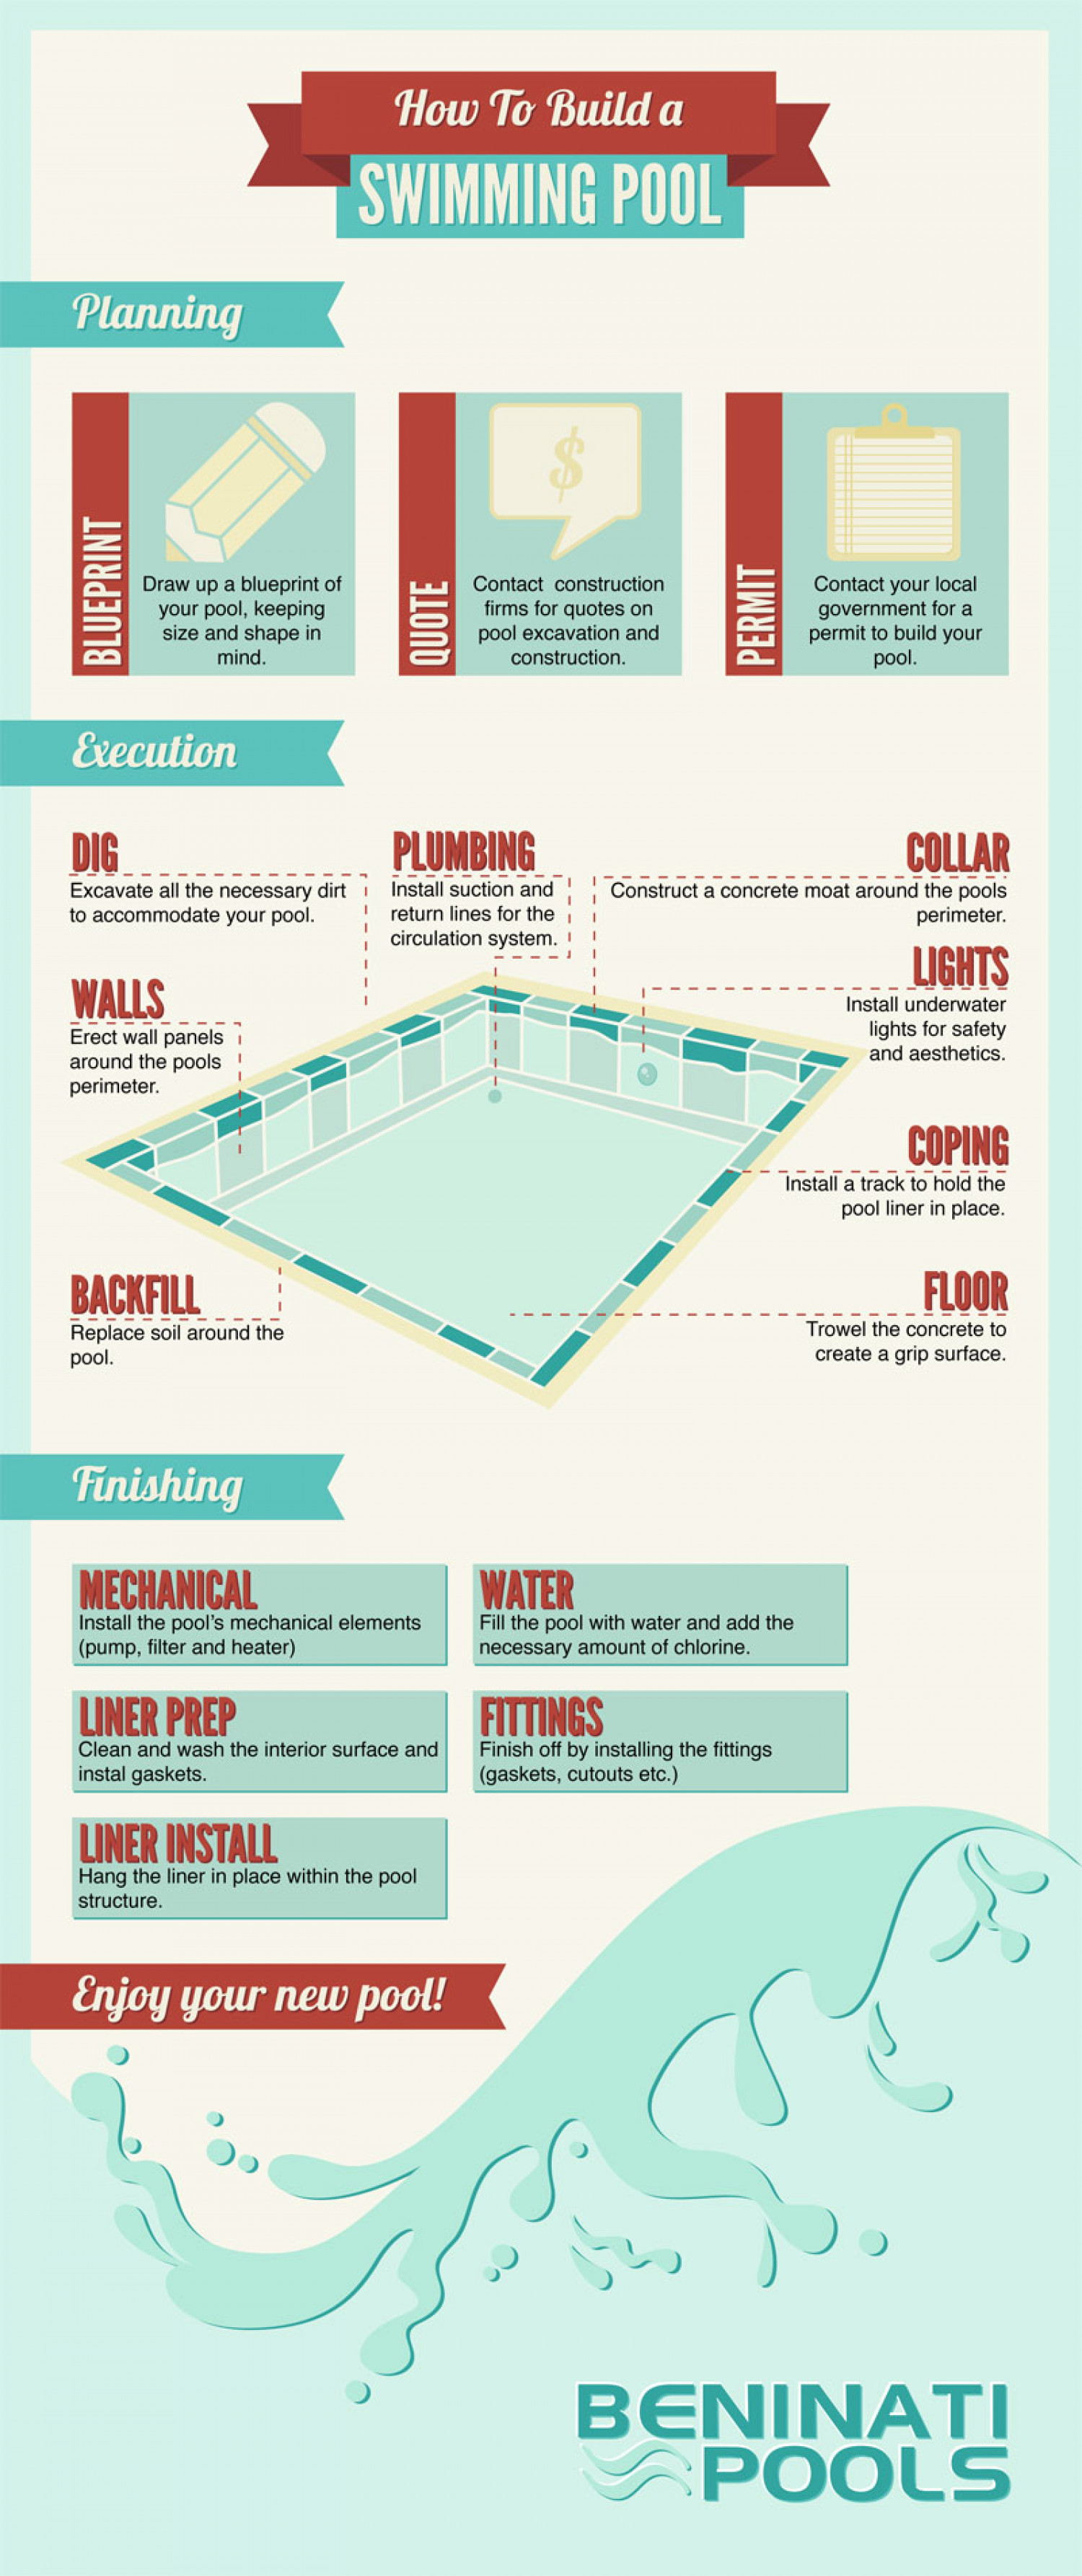 How to build a swimming pool Infographic